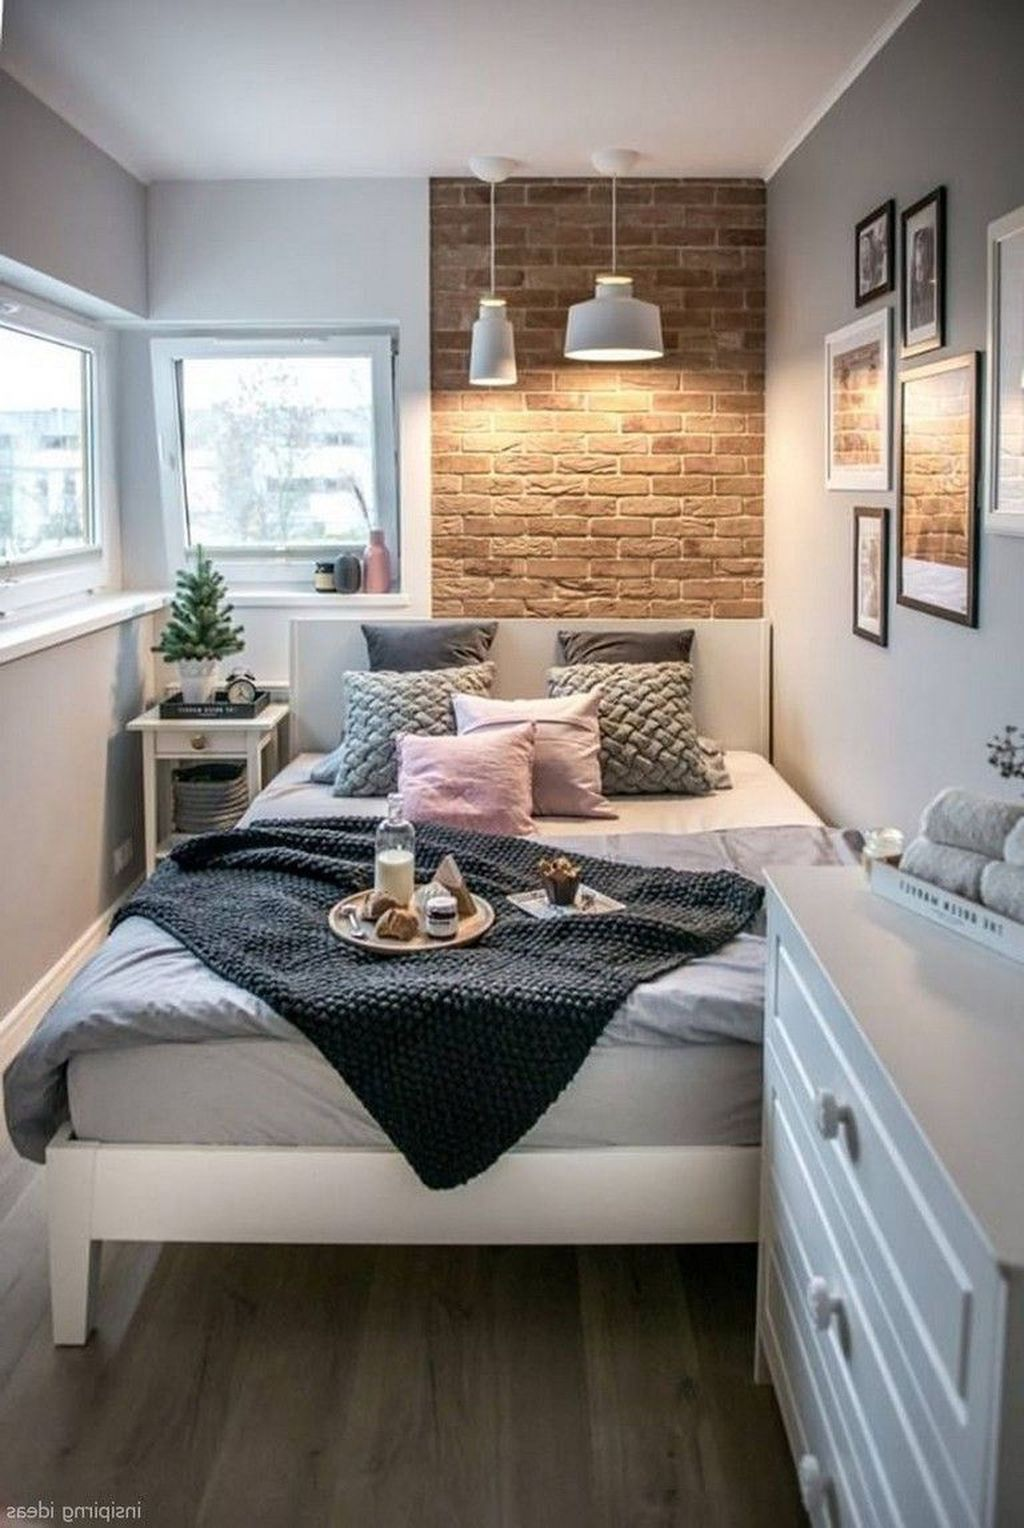 33 Awesome Modern Small Bedroom Design And Decor Ideas In 2020